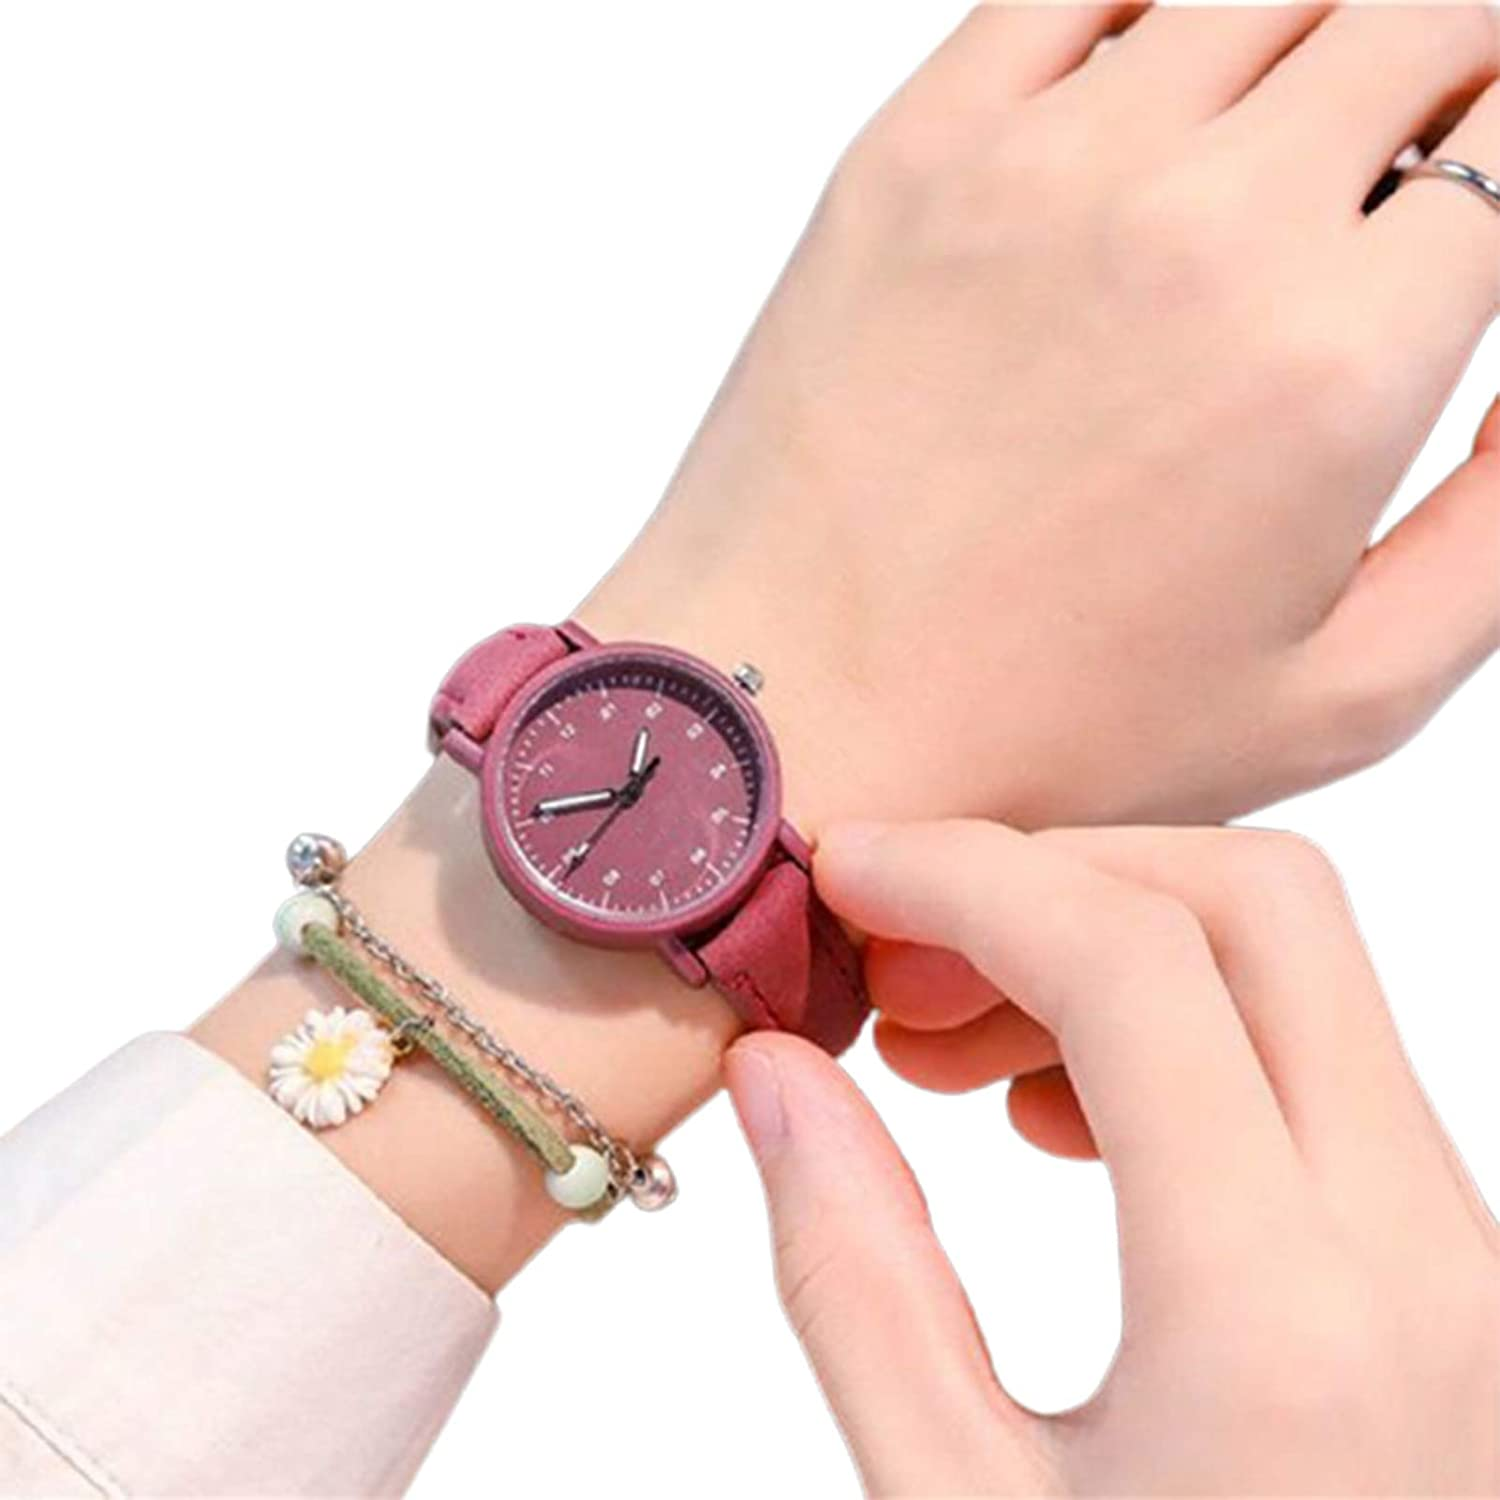 Fashion Minimalist Quartz Watch With Easy-to-use PU Round Dial Strap Leather Direct sale of manufacturer